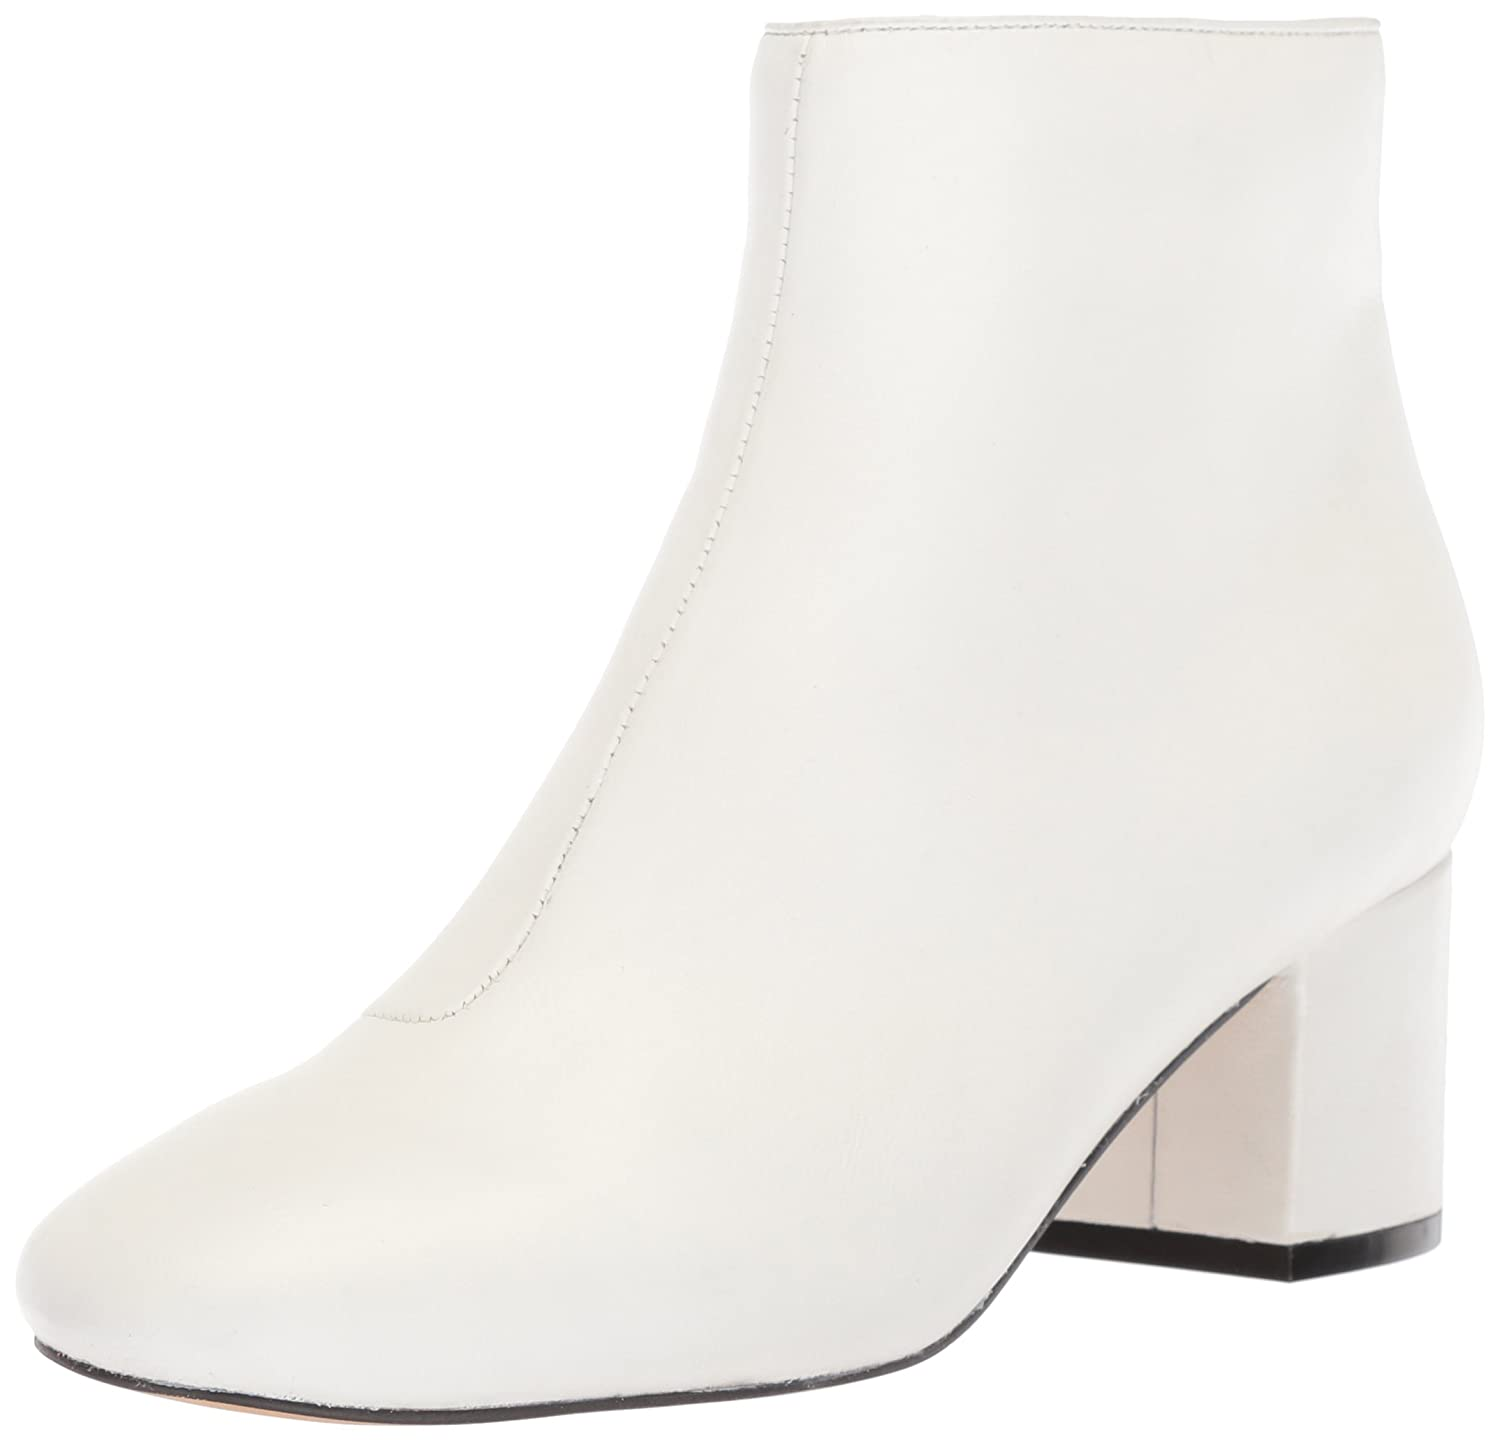 The Fix Women's Daniella Block-Heel Bootie Ankle Boot B076ZZDSLH 7 B(M) US|Bright White Leather